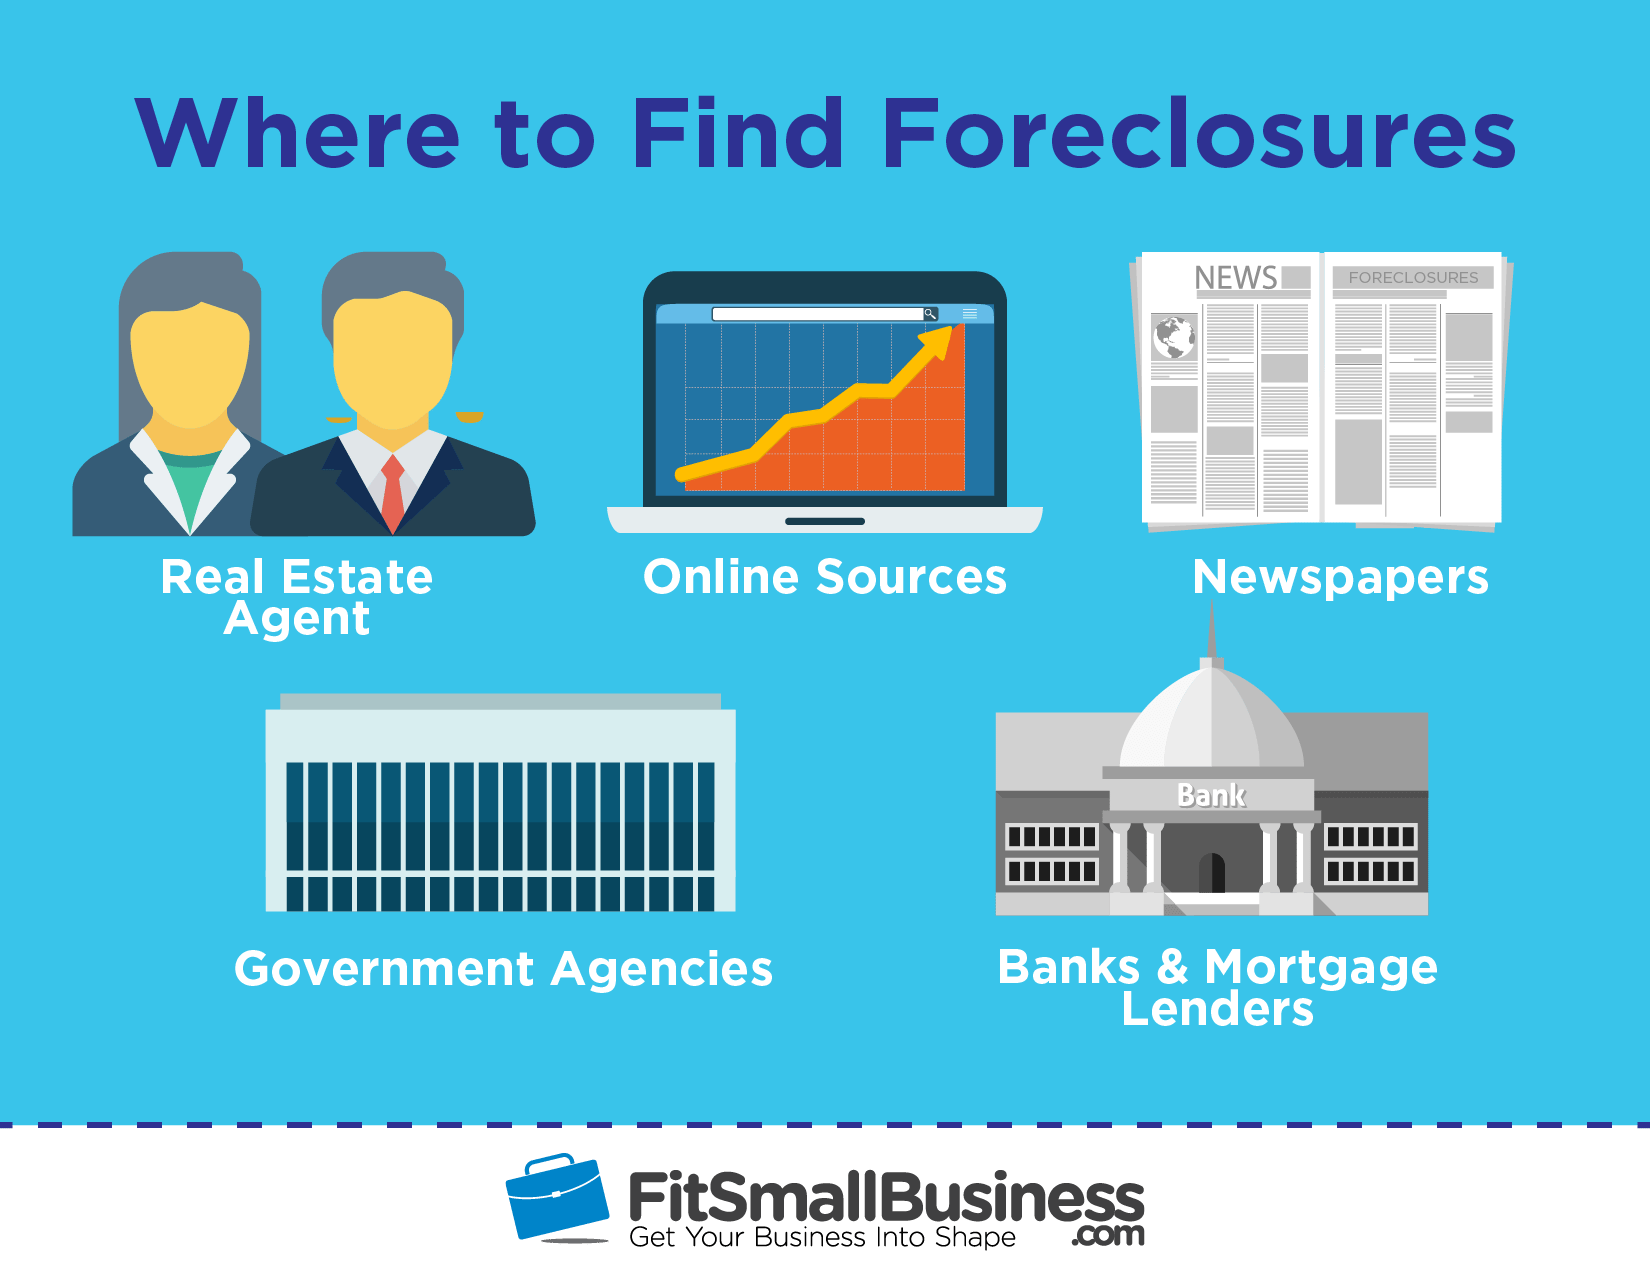 Where to find foreclosures - buying a foreclosed home